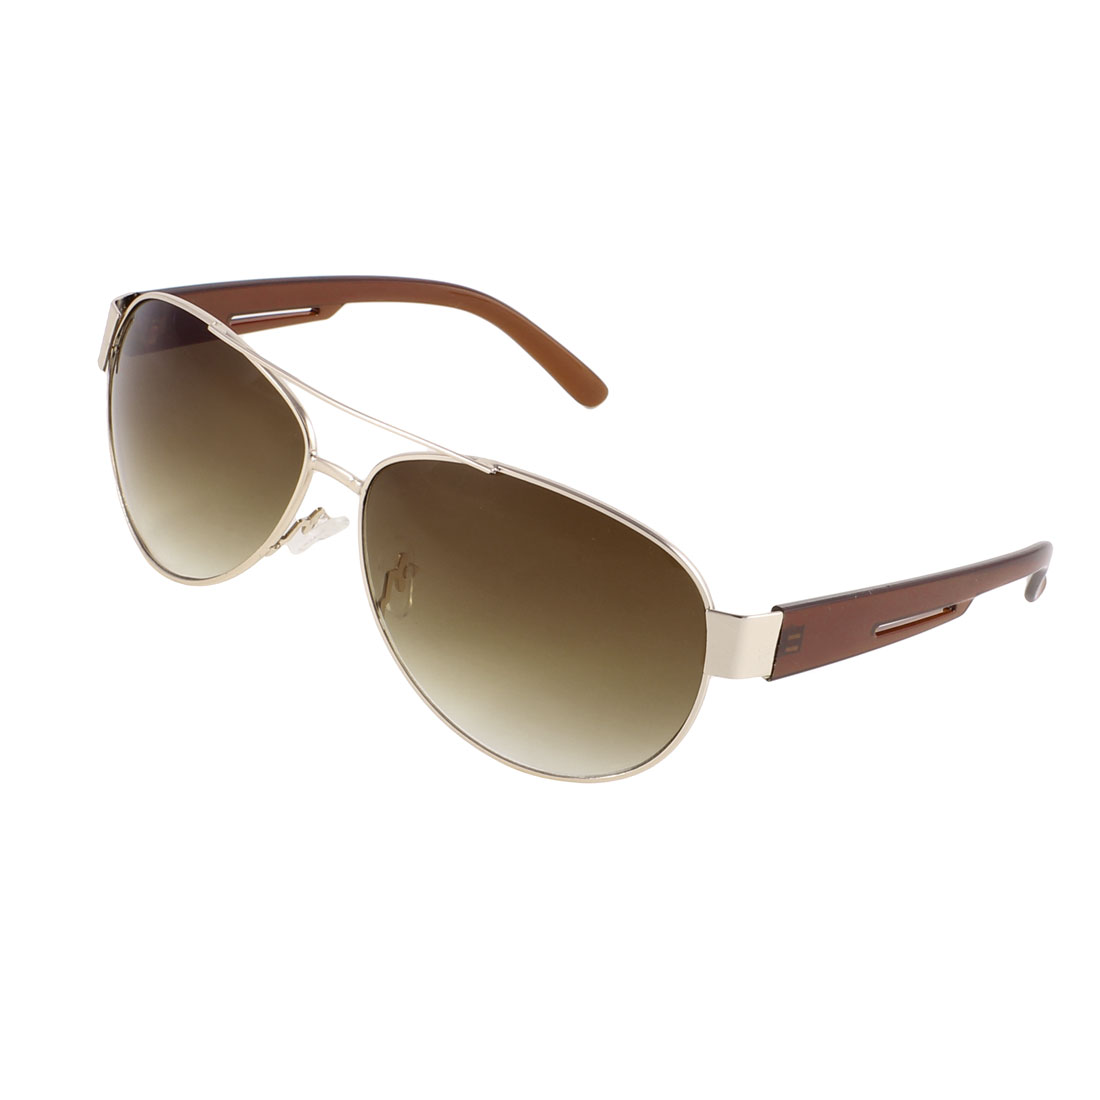 Browm Lens Gold Tone Metal Frame Plastic Smooth Arms Driving Sporting Sunglasses